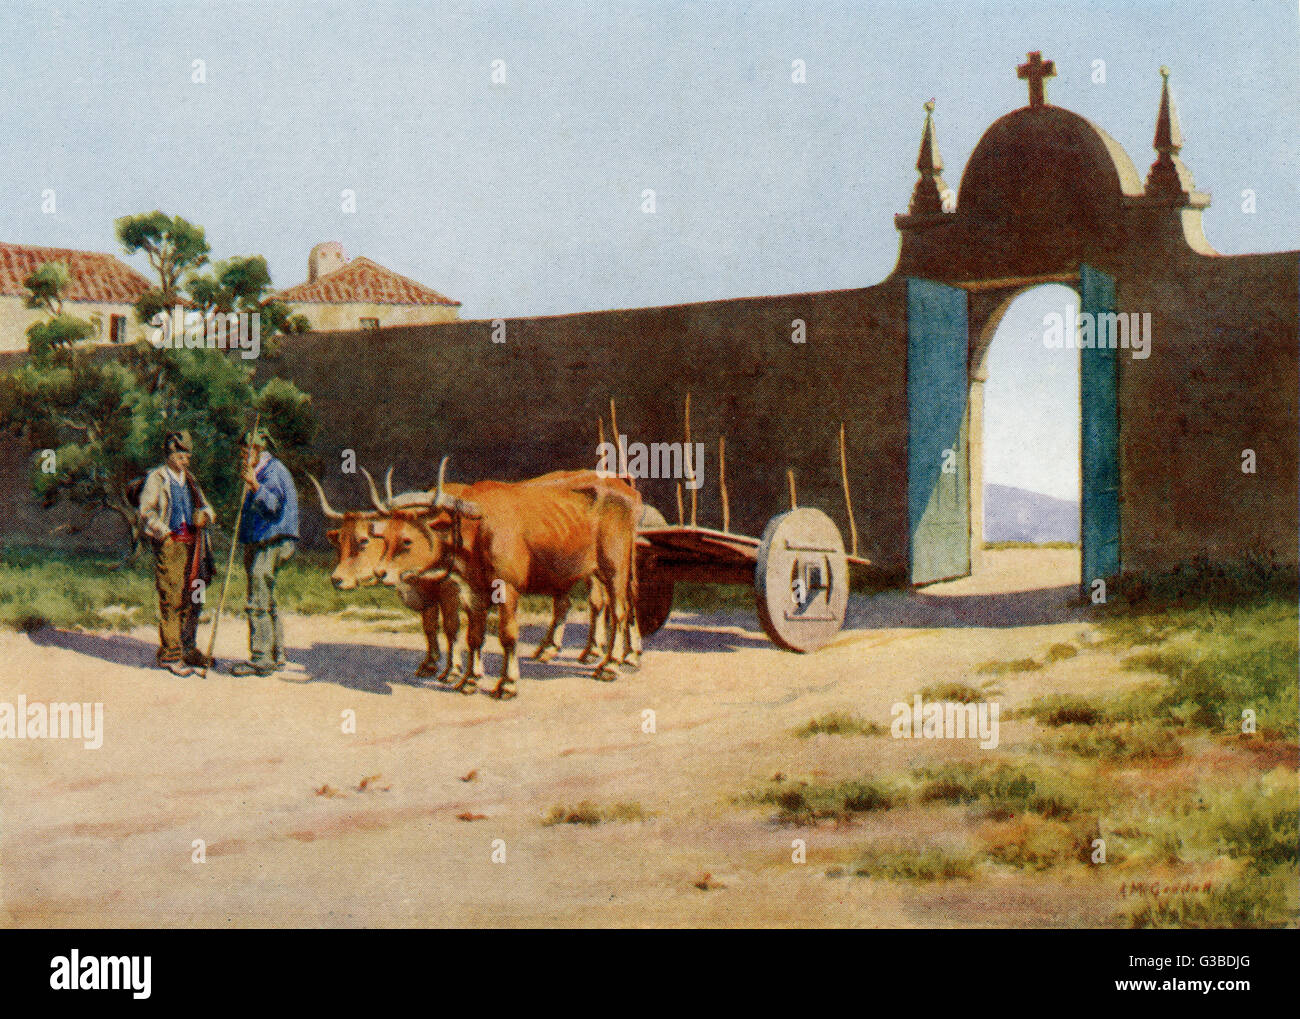 Two oxen wait patiently while  their driver passes the time  of day with an acquaintance.       Date: 1909 - Stock Image